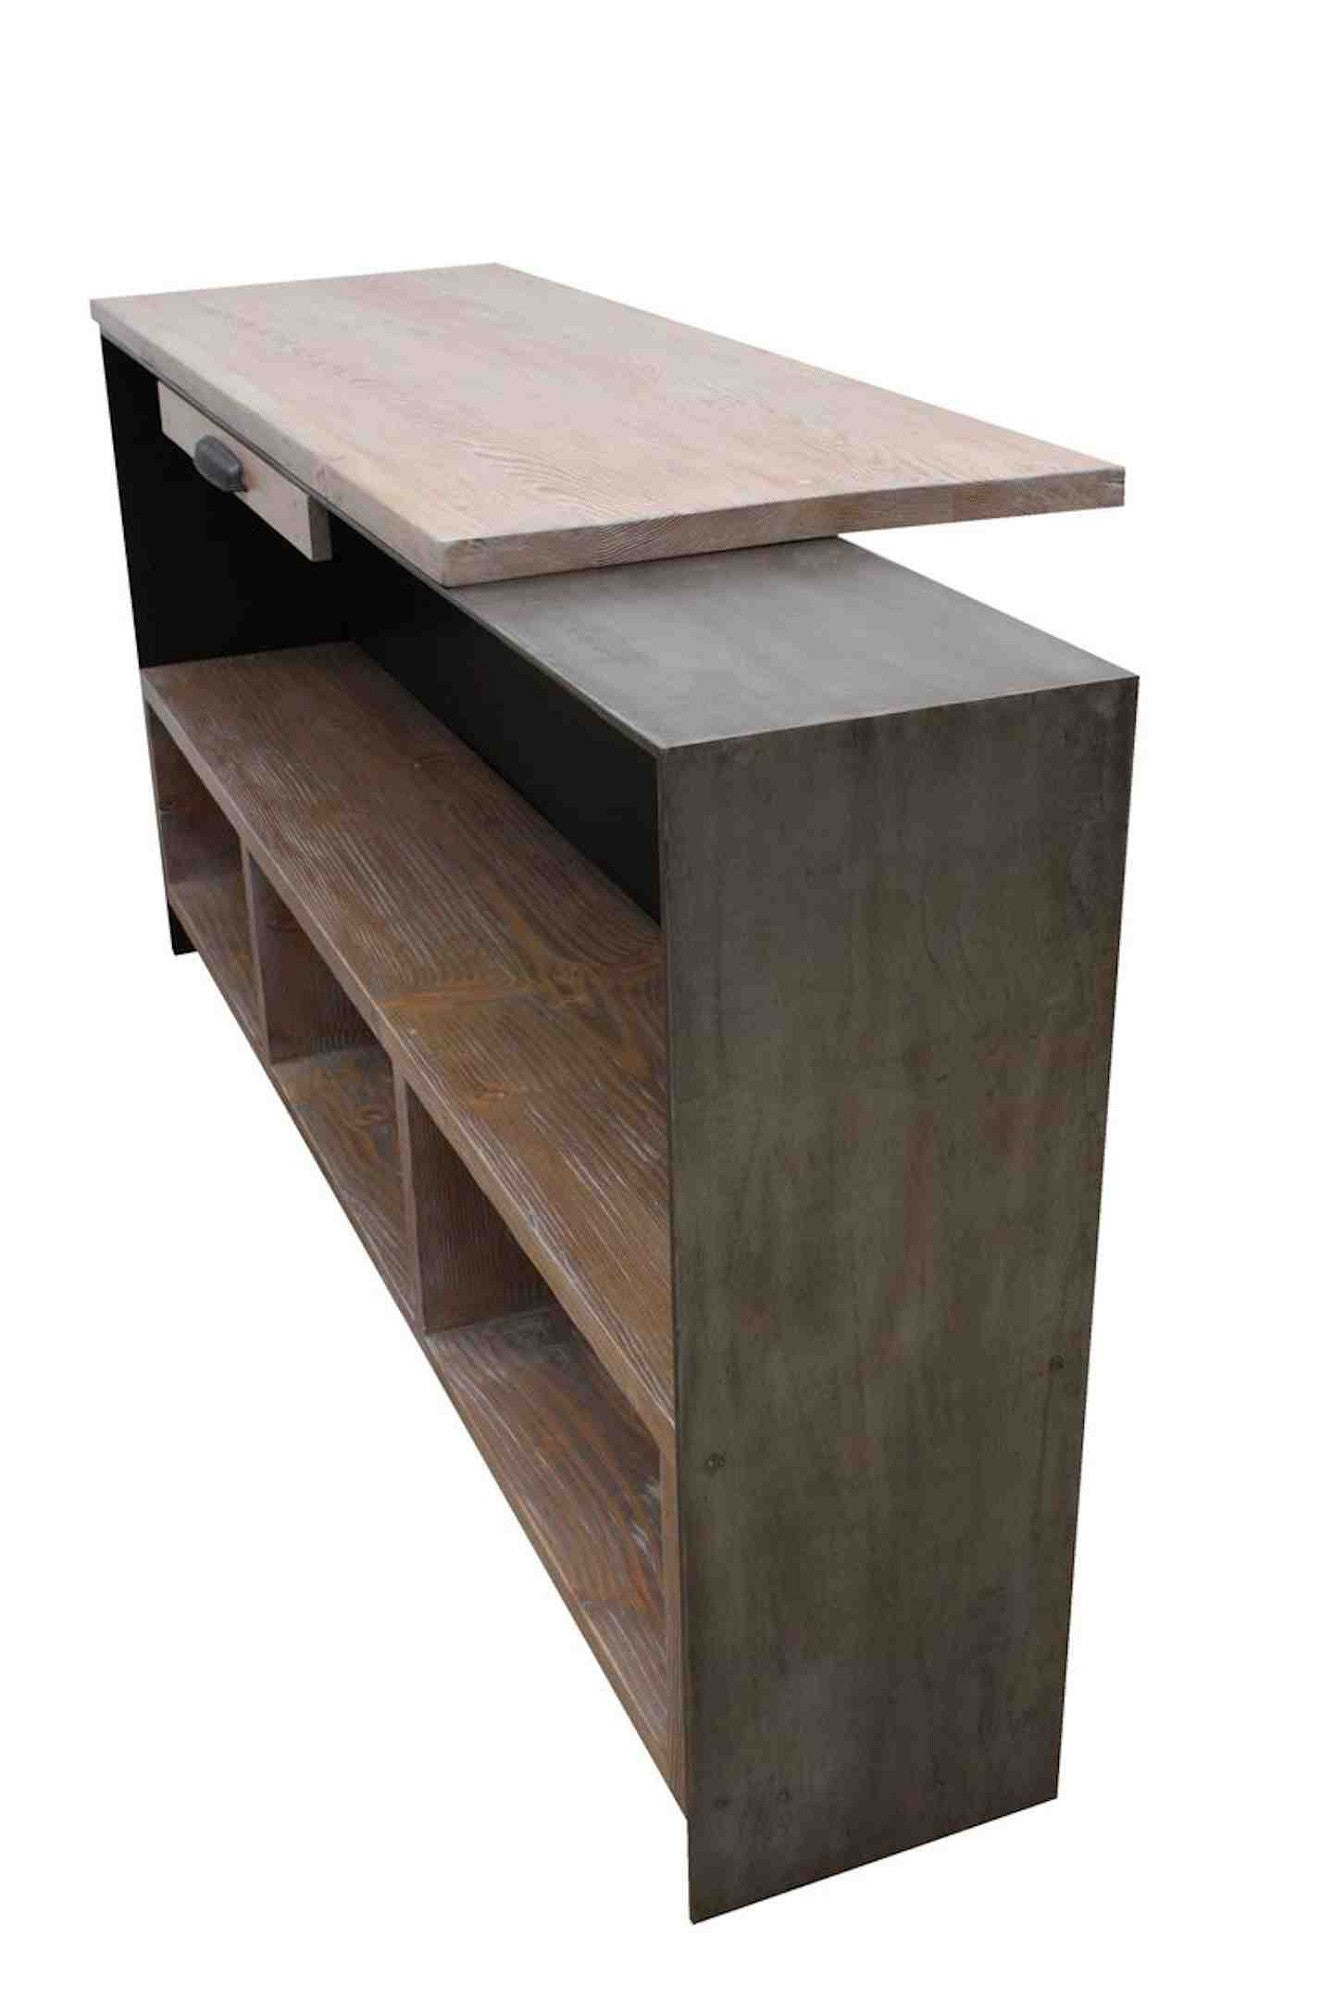 Custom Metal Reception Desk For A Yoga Studio Mortise